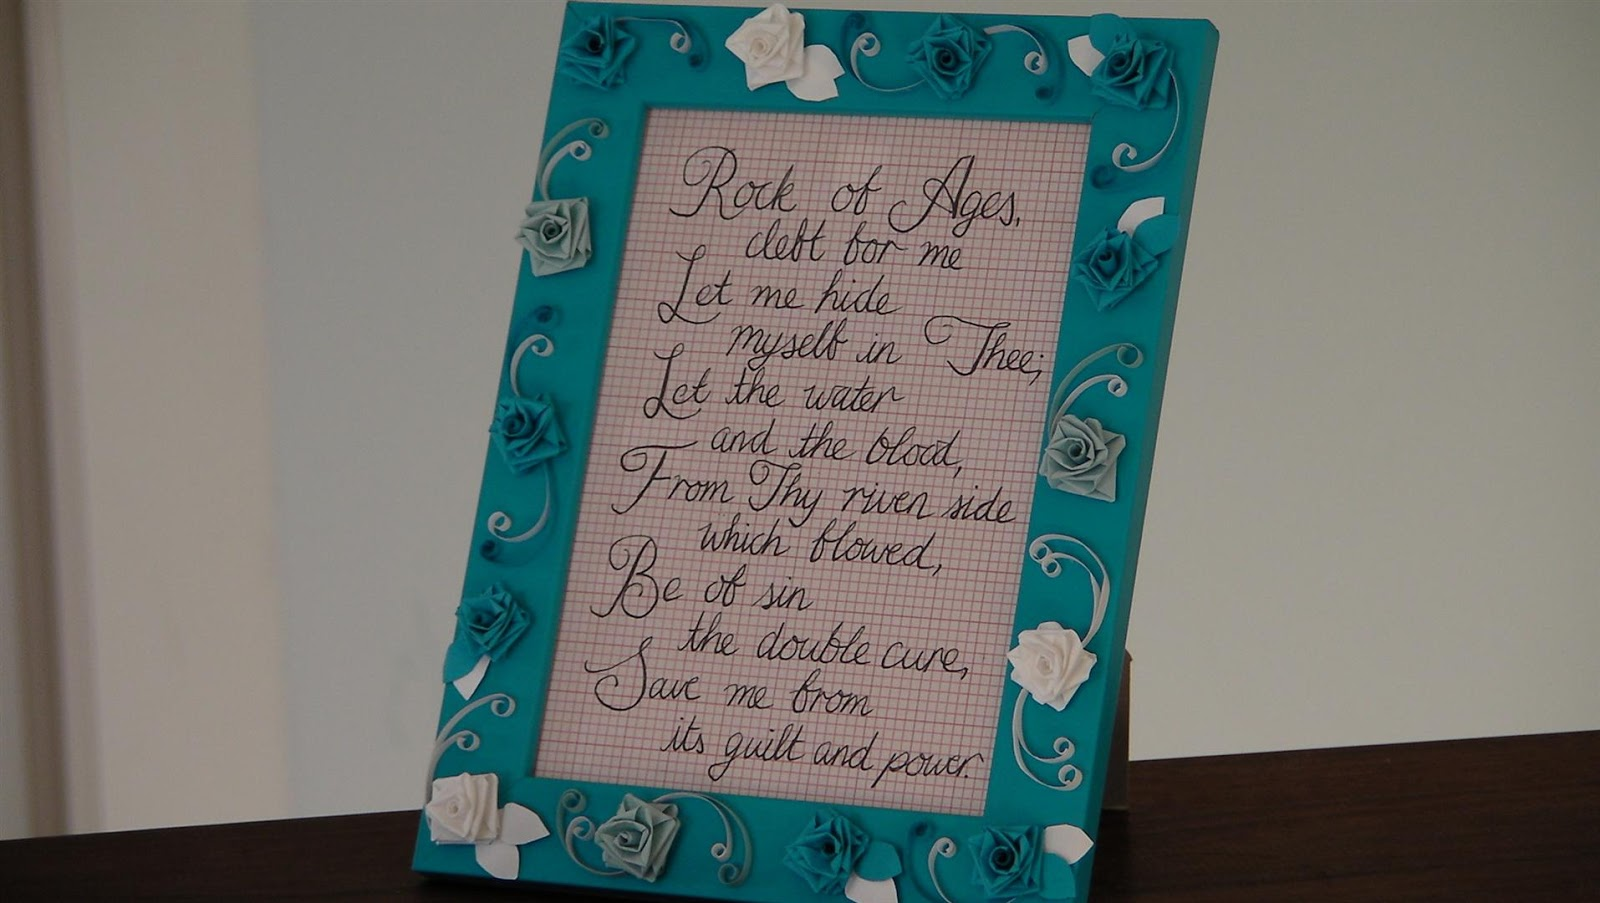 Creativity at home quilled paper rose picture frame i am really interested in ways to display the word or encouraging snippets this is from the hymn rock of ages which ive really enjoyed lately jeuxipadfo Image collections